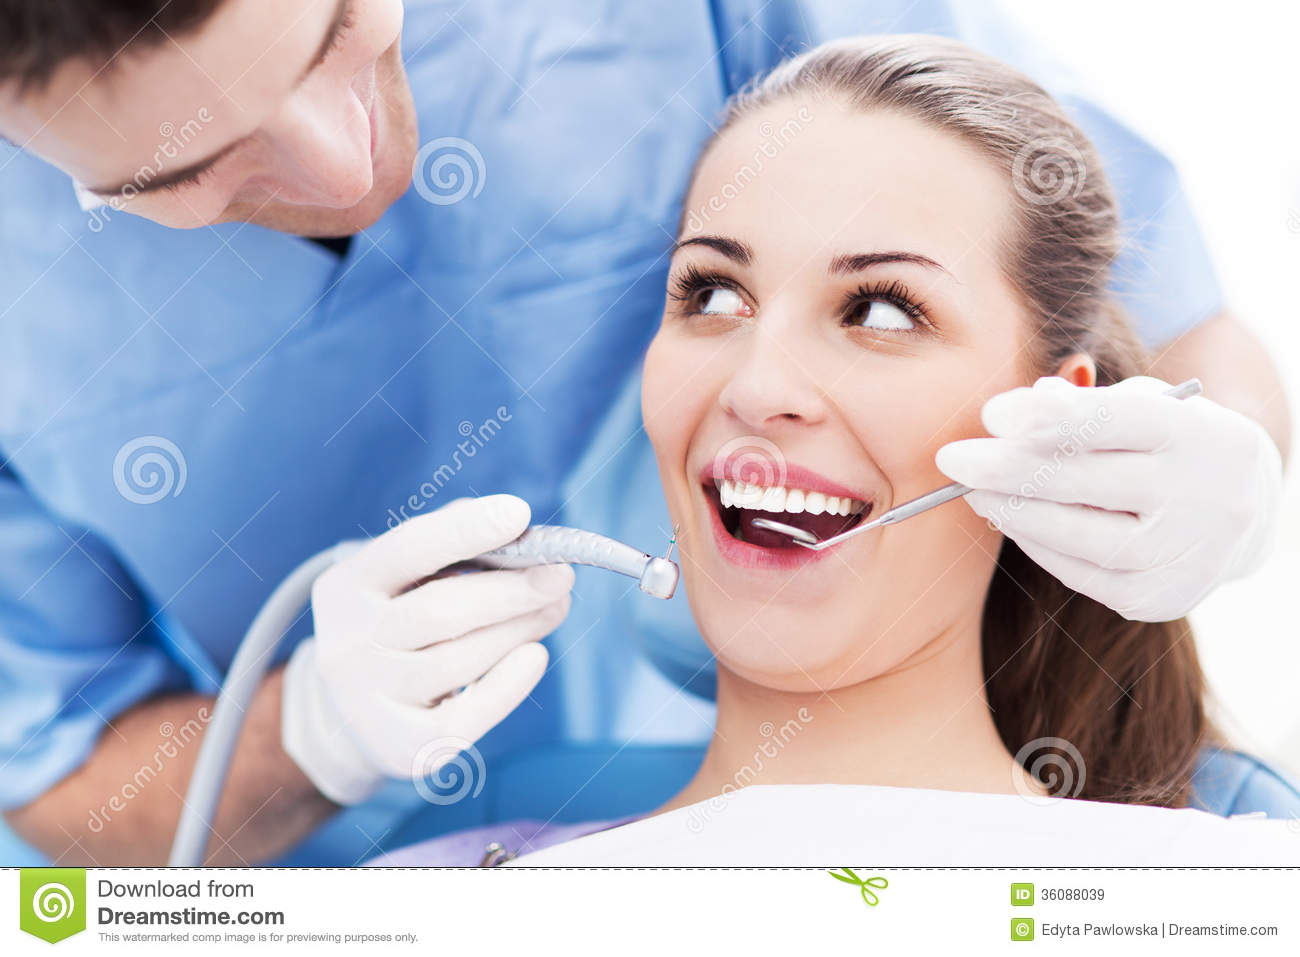 young-woman-dentist-office-male-women-dentists-36088039.jpg